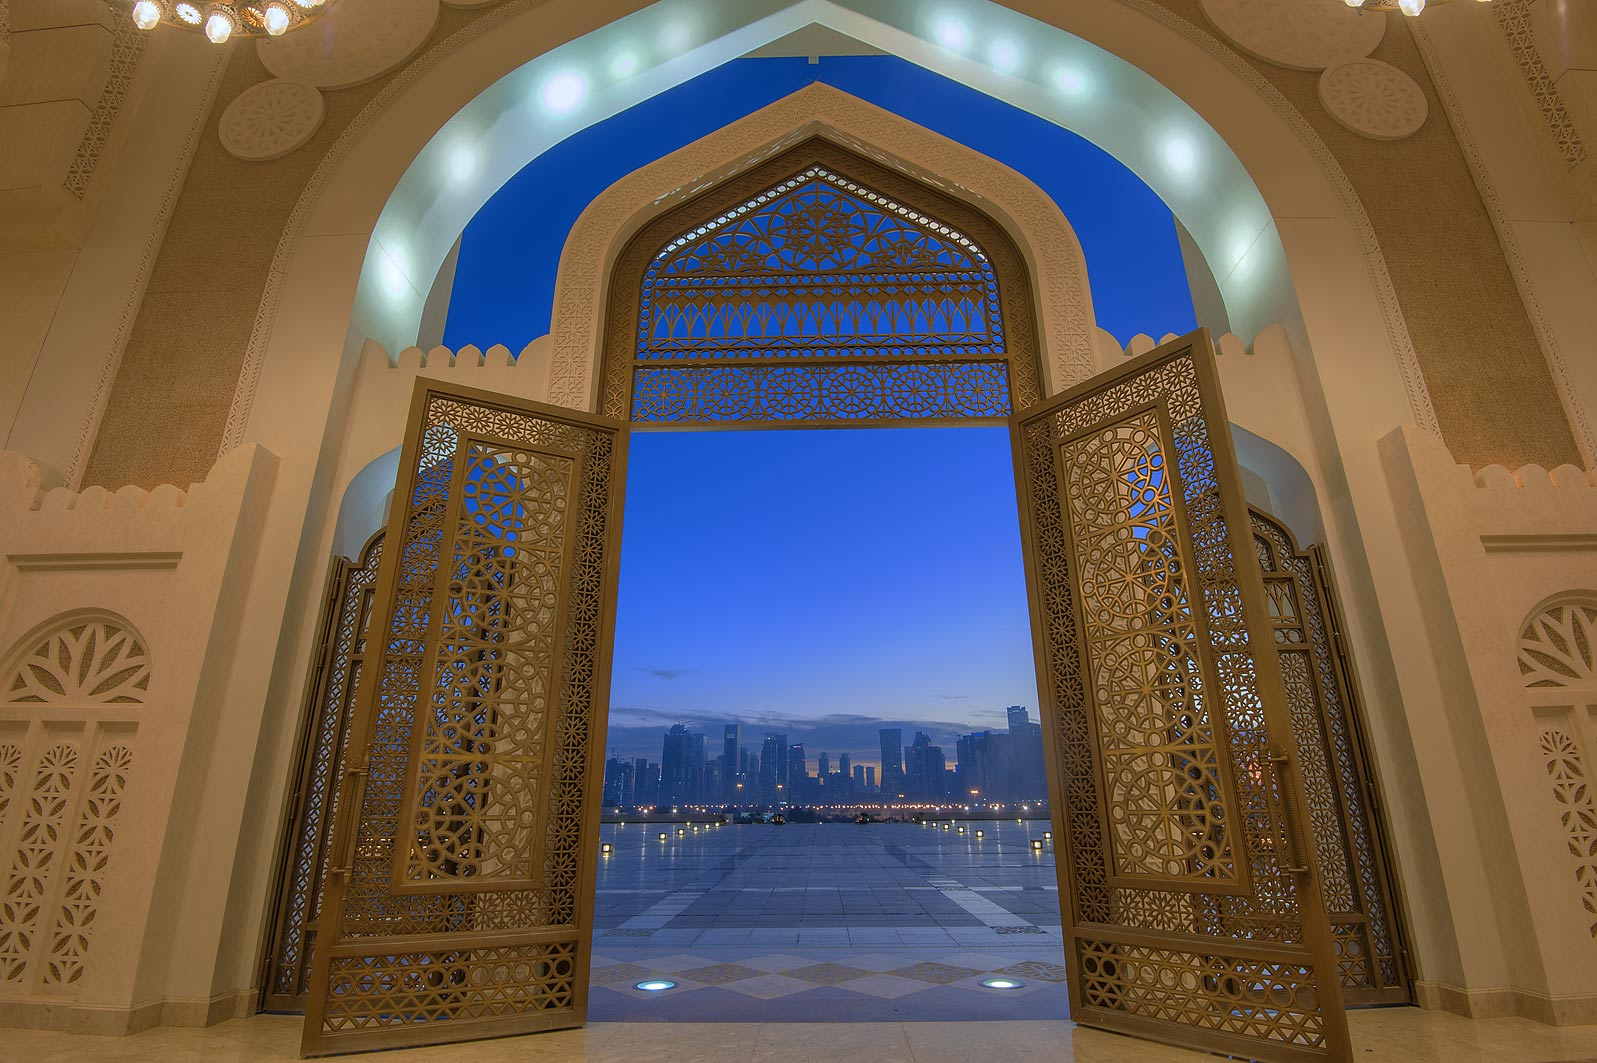 Women's gate of State Mosque (Sheikh Muhammad Ibn...Mosque) at morning dusk. Doha, Qatar